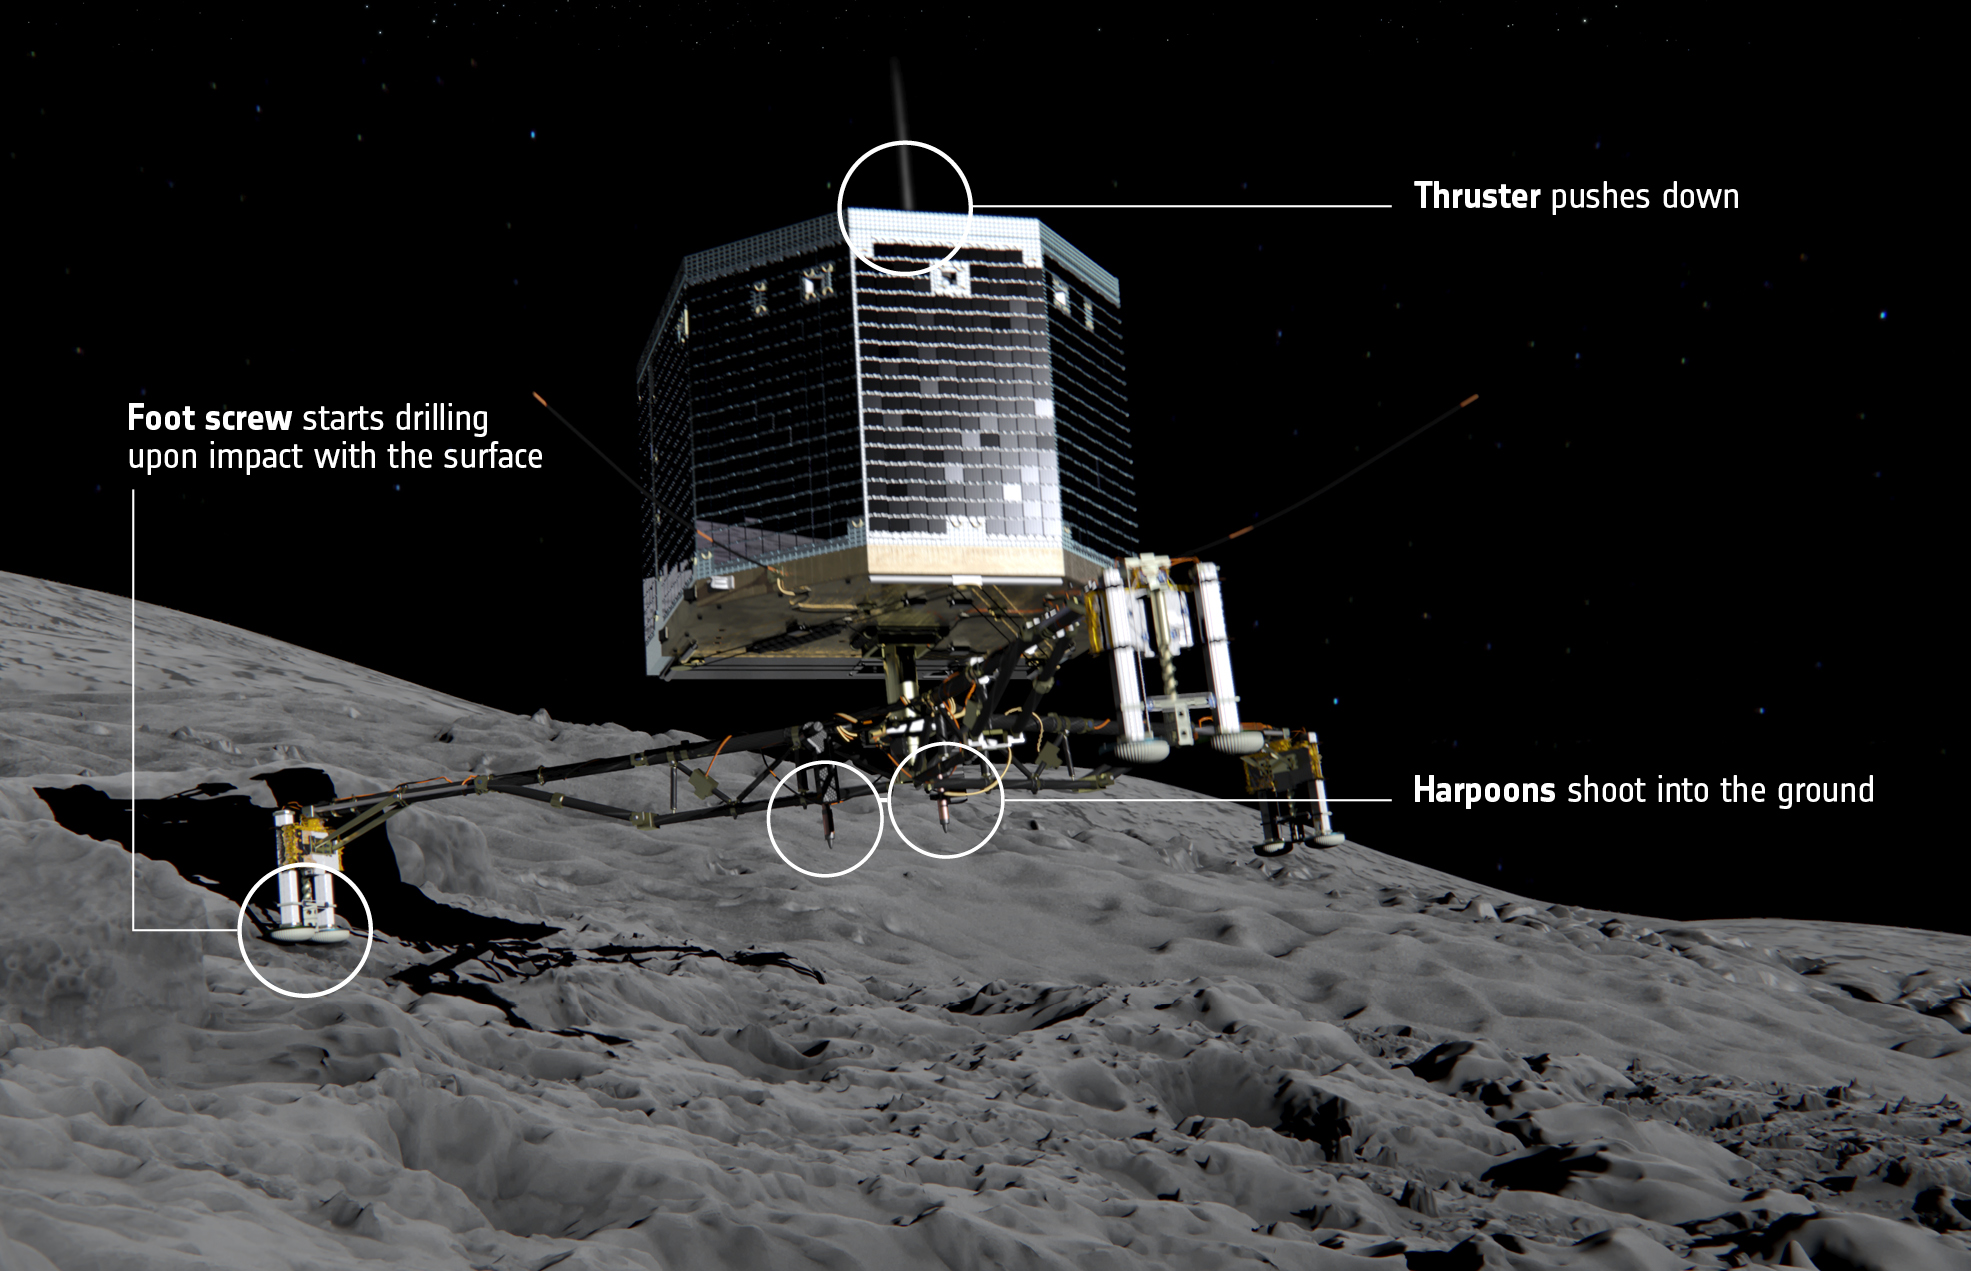 At the moment of touchdown on comet 67P/Churyumov–Gerasimenko, landing gear will absorb the forces of landing while ice screws in each of the probe's feet and a harpoon system will lock Philae to the surface. At the same time, a thruster on top of the lander will push it down to counteract the impulse of the harpoon imparted in the opposite direction. Credit: ESA/ATG medialab